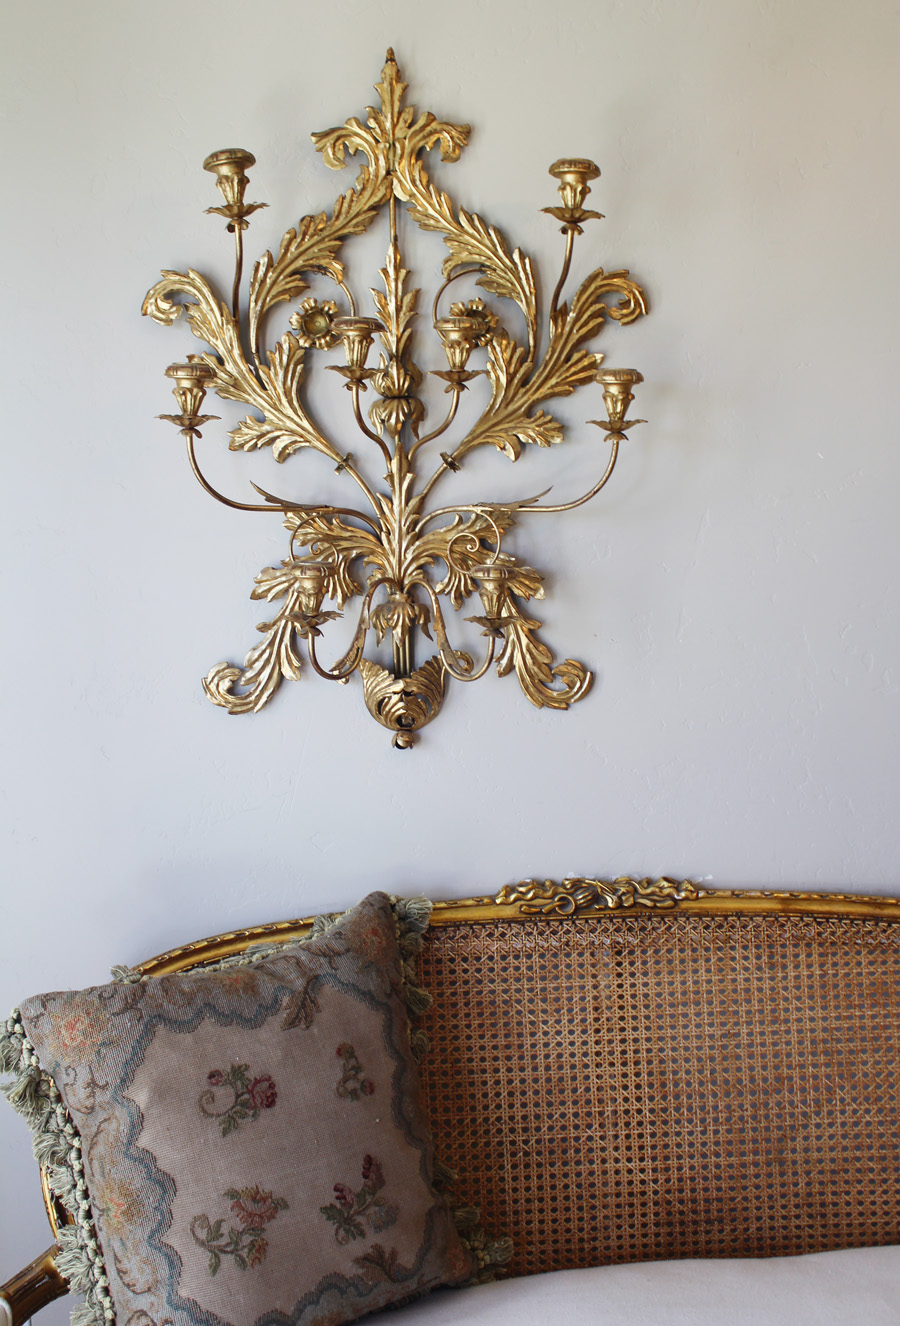 Antique Italian Tole Gilt Wall Sconce Candelabra-